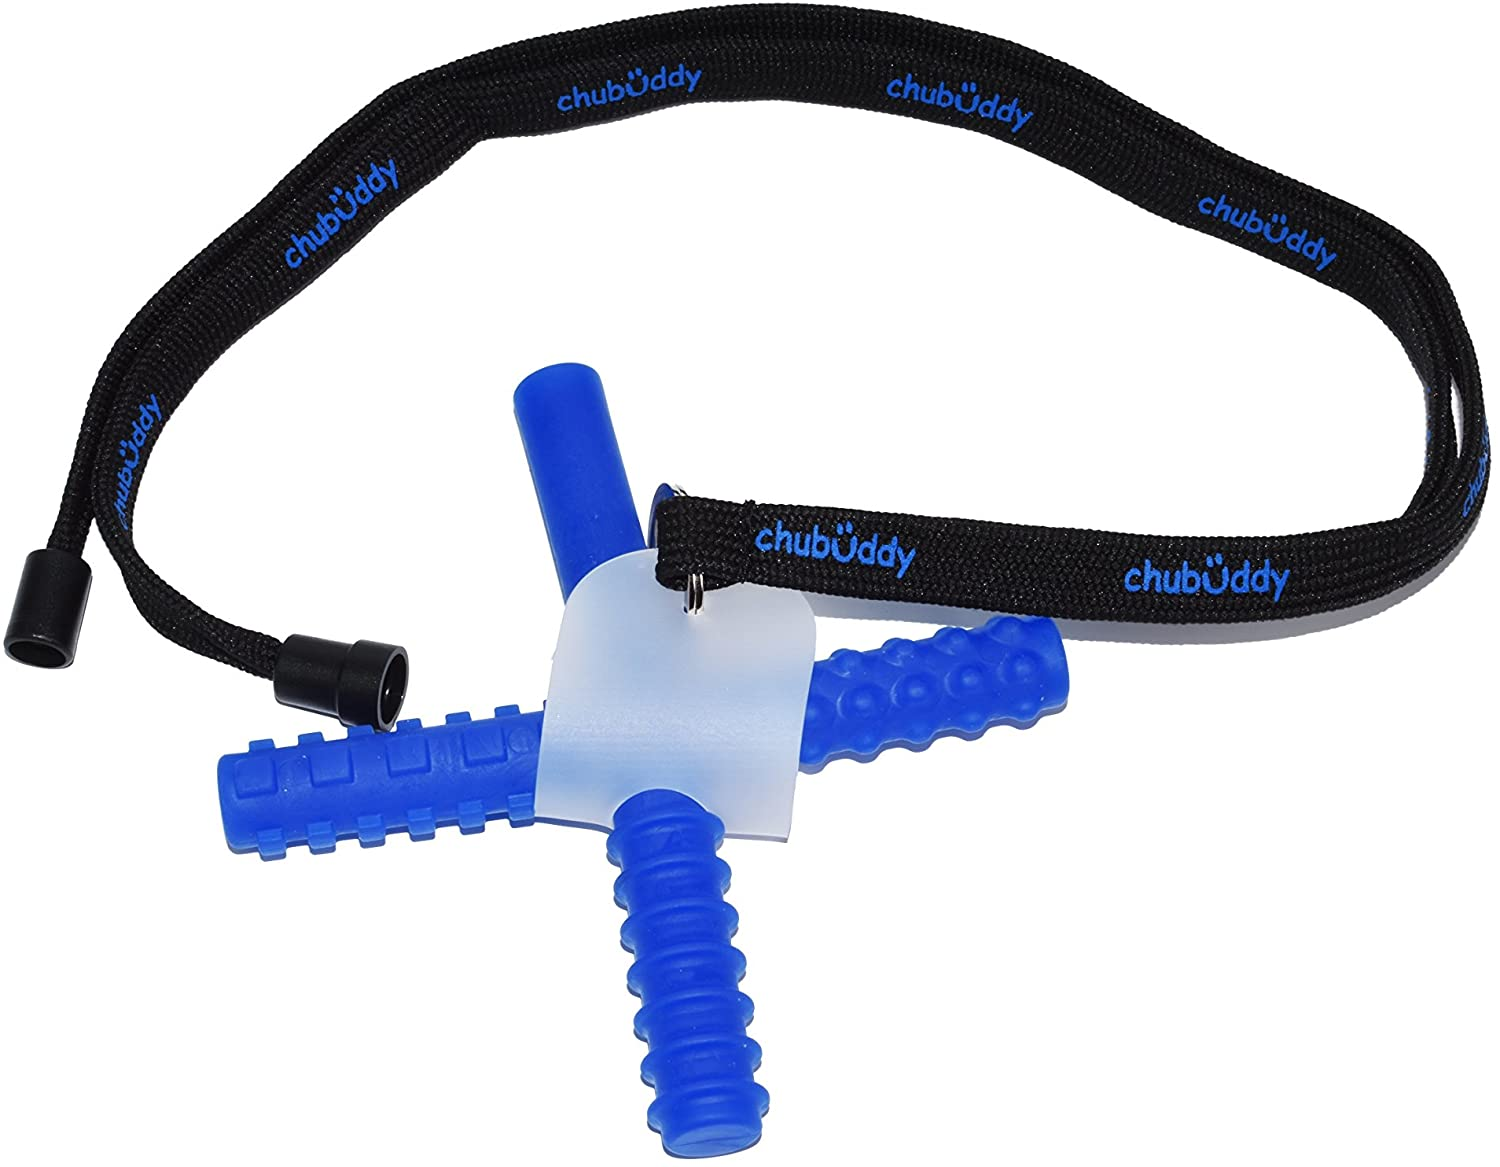 chubuddy Chewy Holder with Blue Chew Stixx* Included *Chew Stixx is a Registered Mark of The Sensory University (Black Neck Lanyard Screen Print)